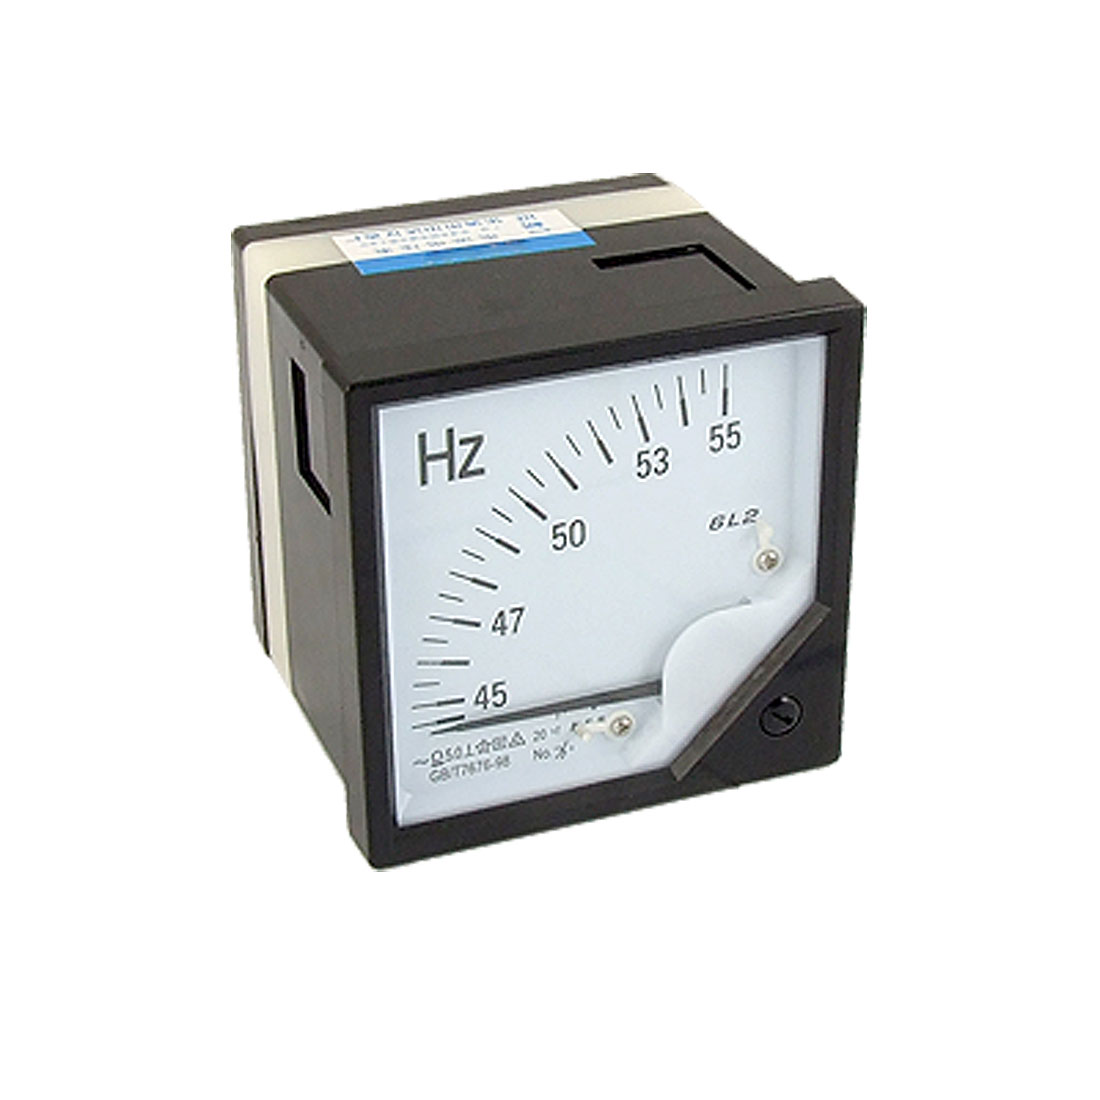 45-55 Hz AC100V Analogue Frequency Meter Gauge Square Panel